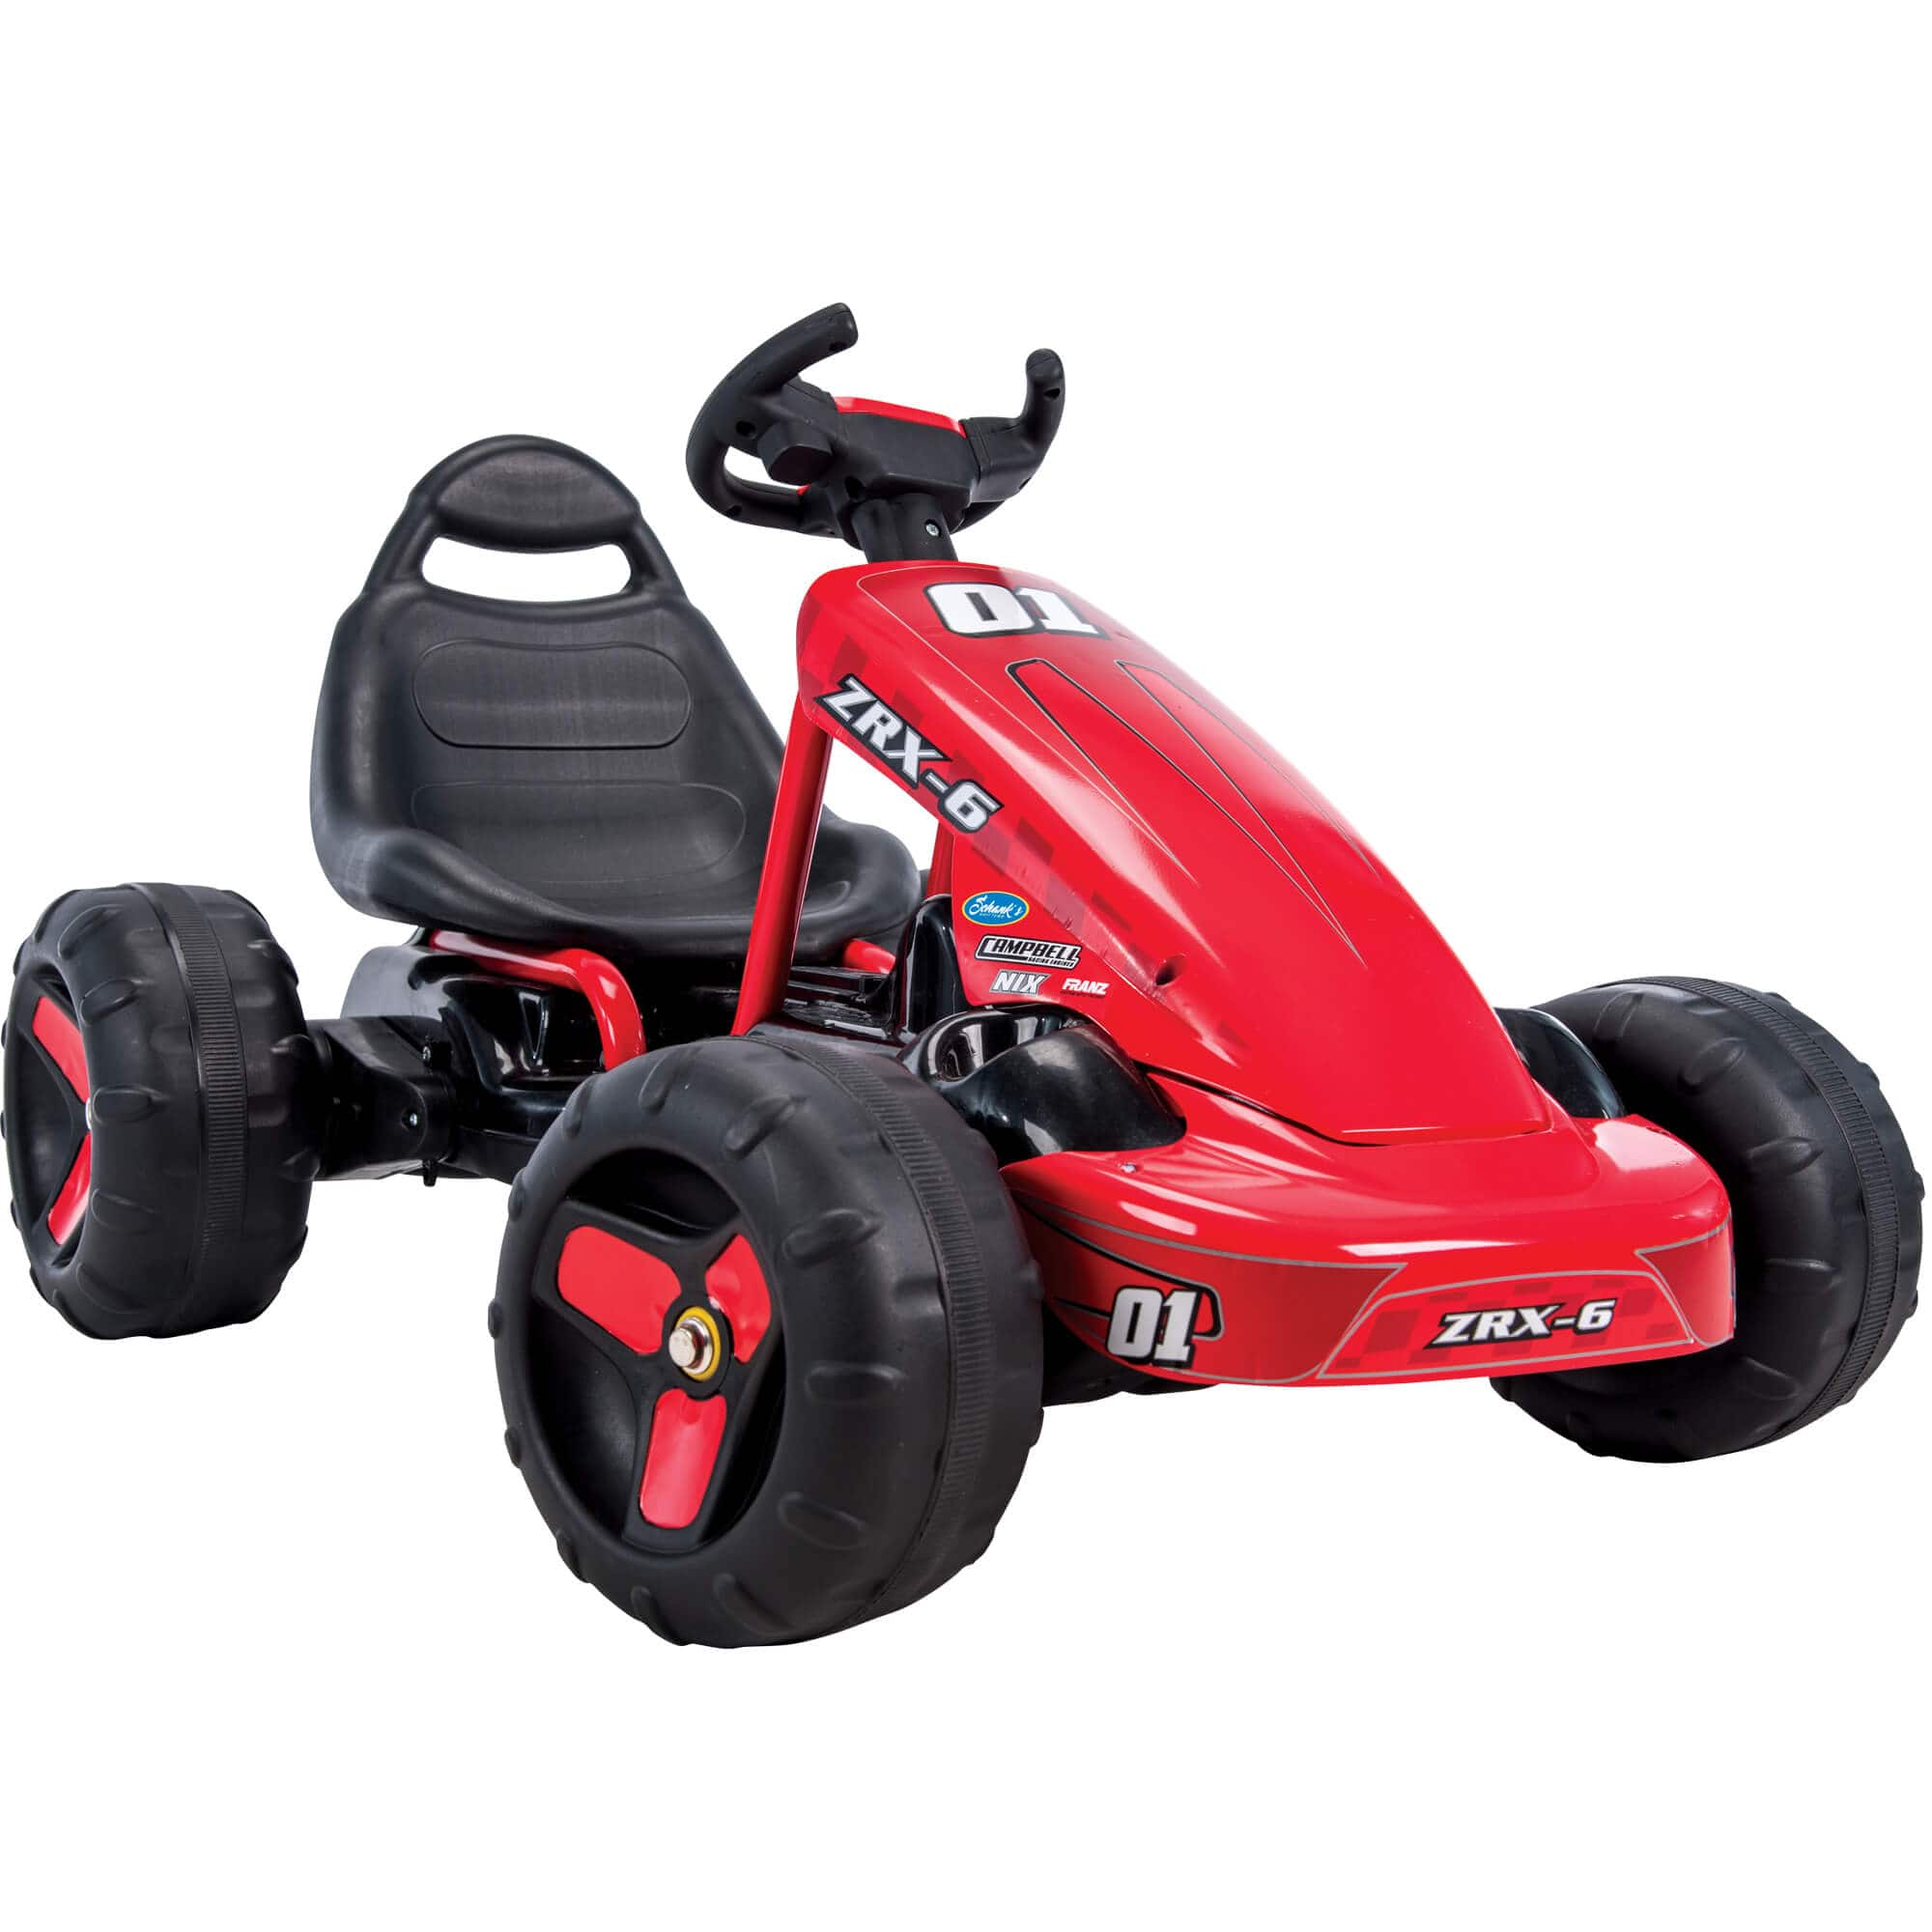 Walmart - Huffy ZRX-6 6V Battery-Powered Electric Pedal Go-Kart, Red In store -$25